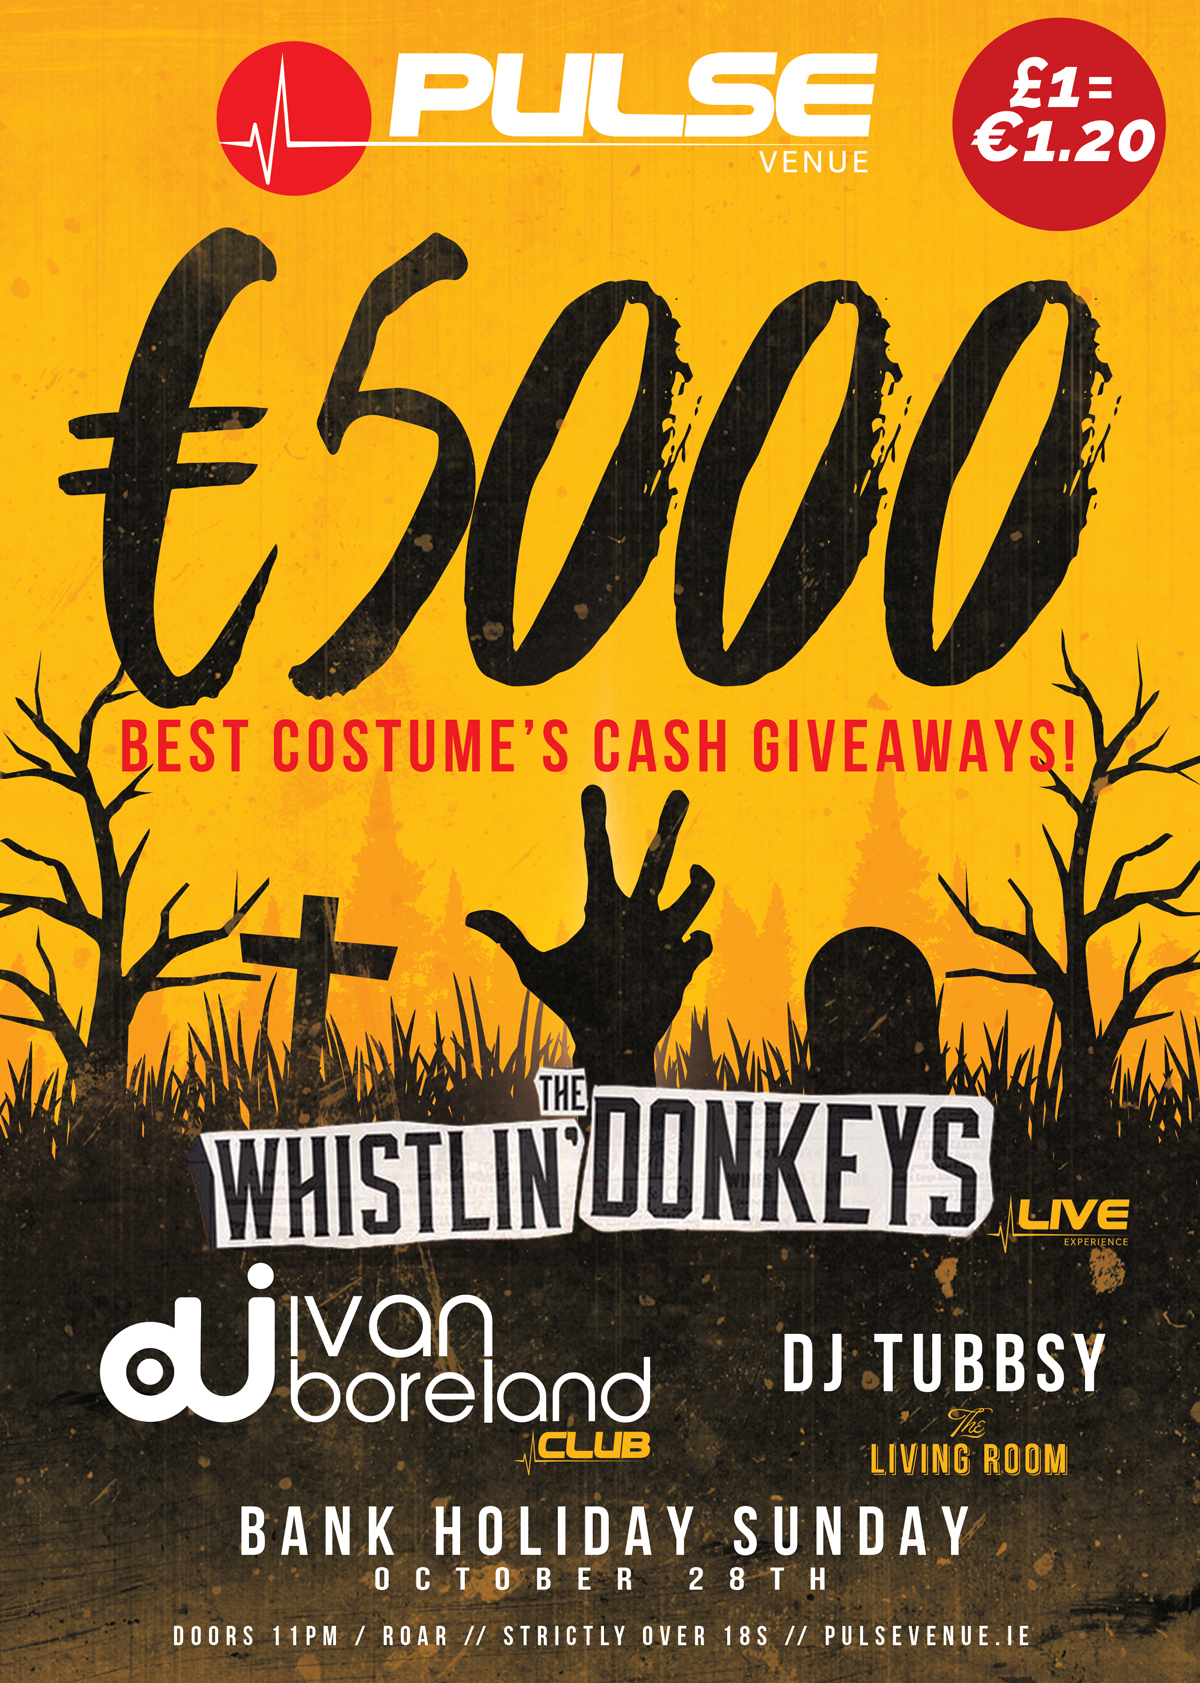 pulse-venue---bank-holiday-sunday-halloween-5000-giveaway-oct-28-2018.jpg